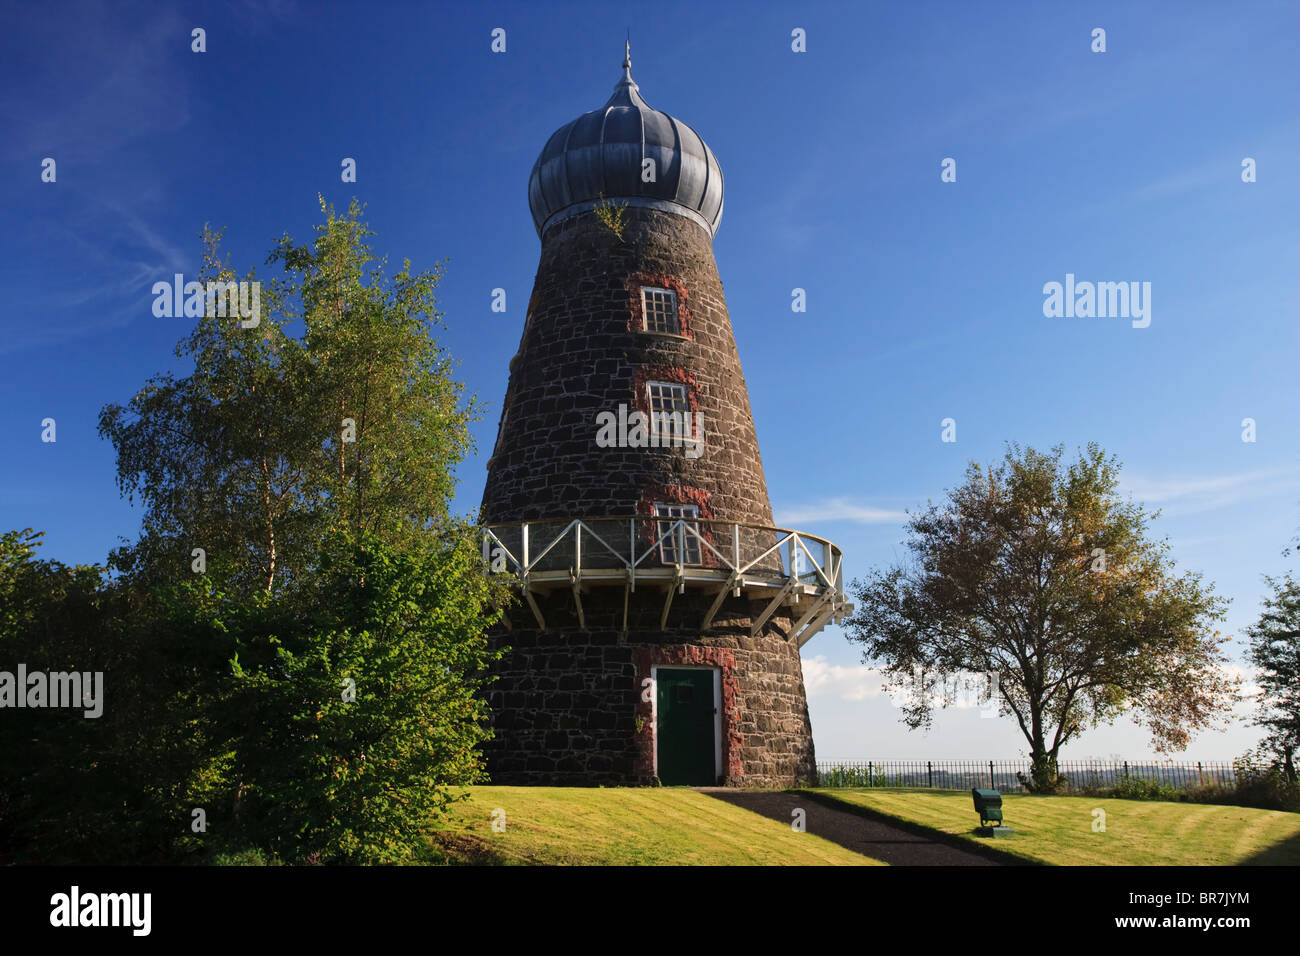 County Londonderry Village Stock Photos Amp County